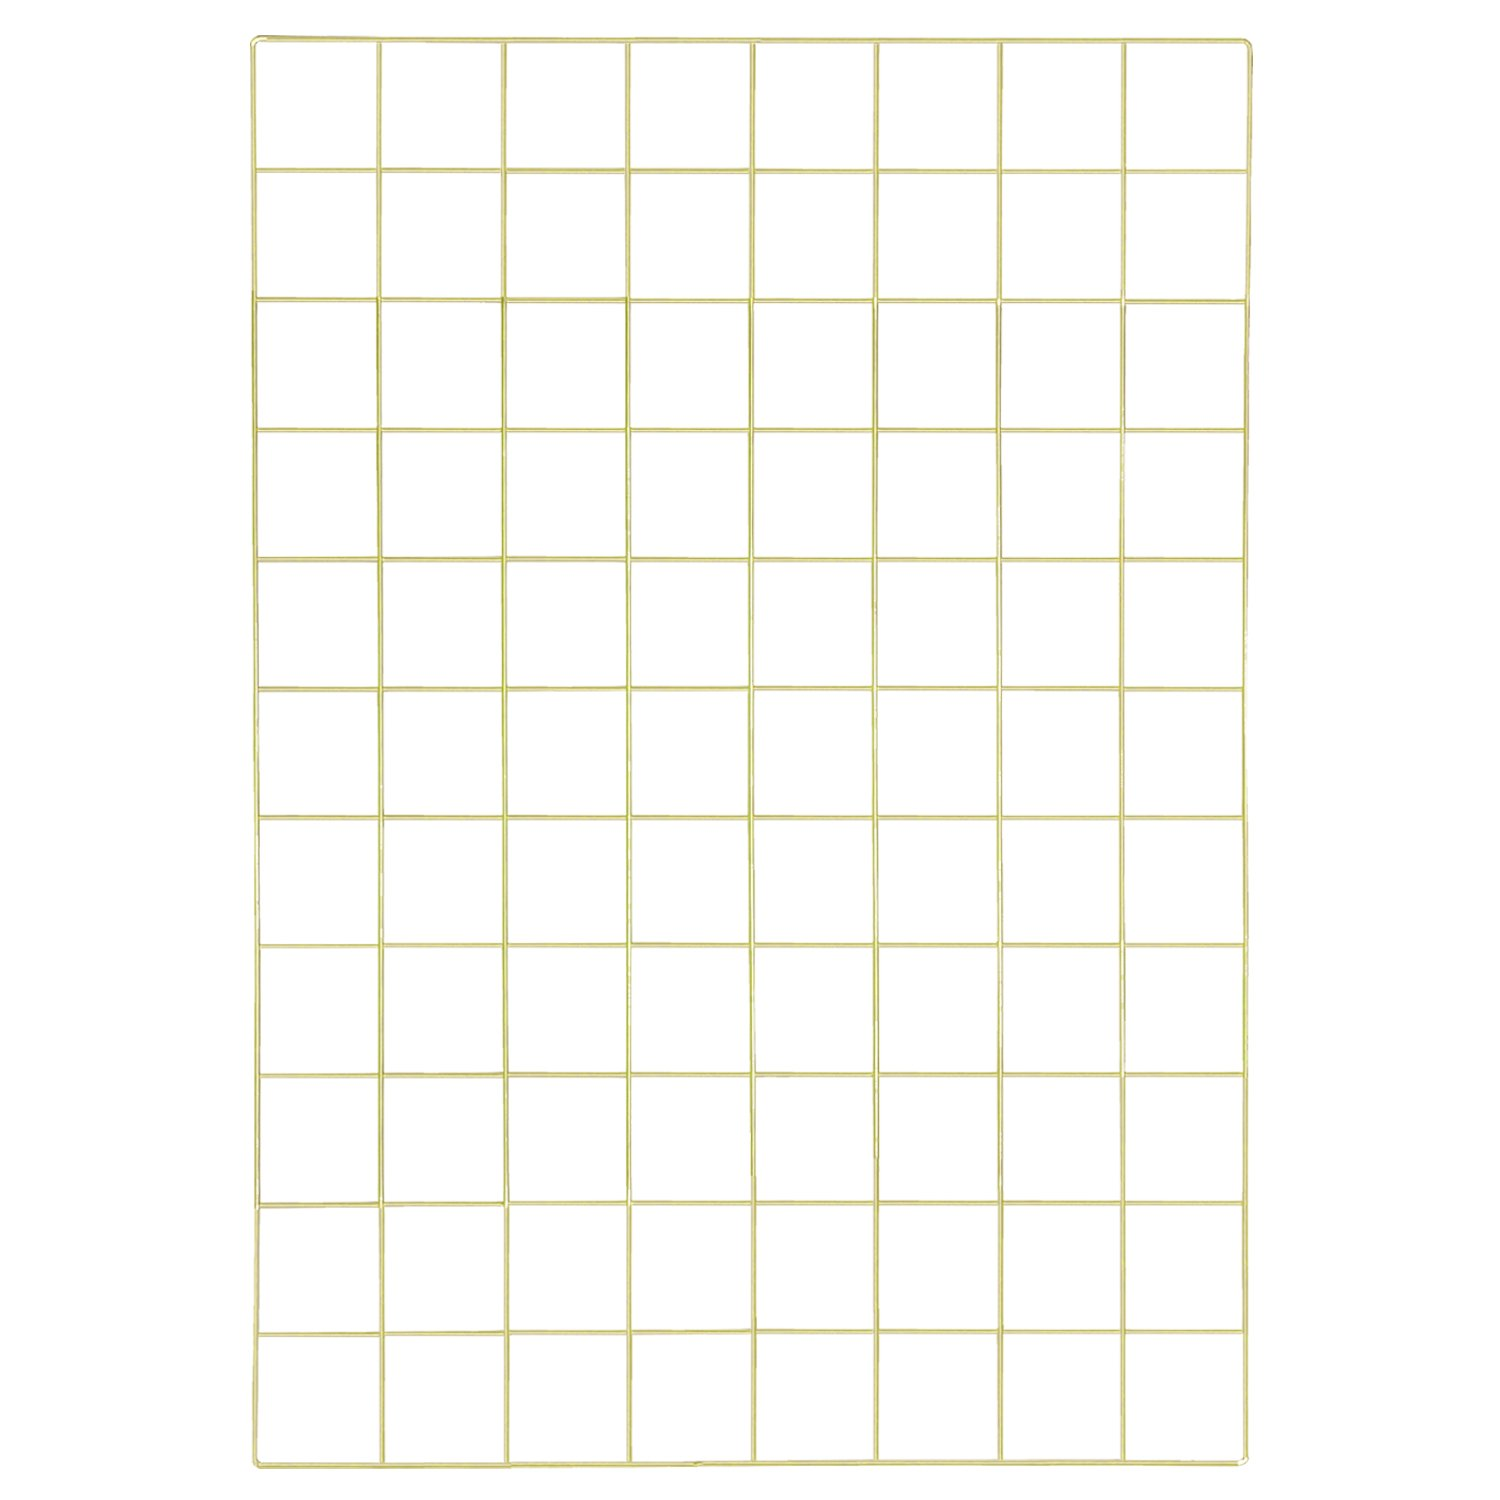 Simmer Stone Gold Wall Grid Panel for Photo Hanging Display Wall Decoration Organizer, Multi-Functional Wall Storage Display Grid, 10 Clips 4 Nails Offered, Set of 1, 17.7 x 25.6